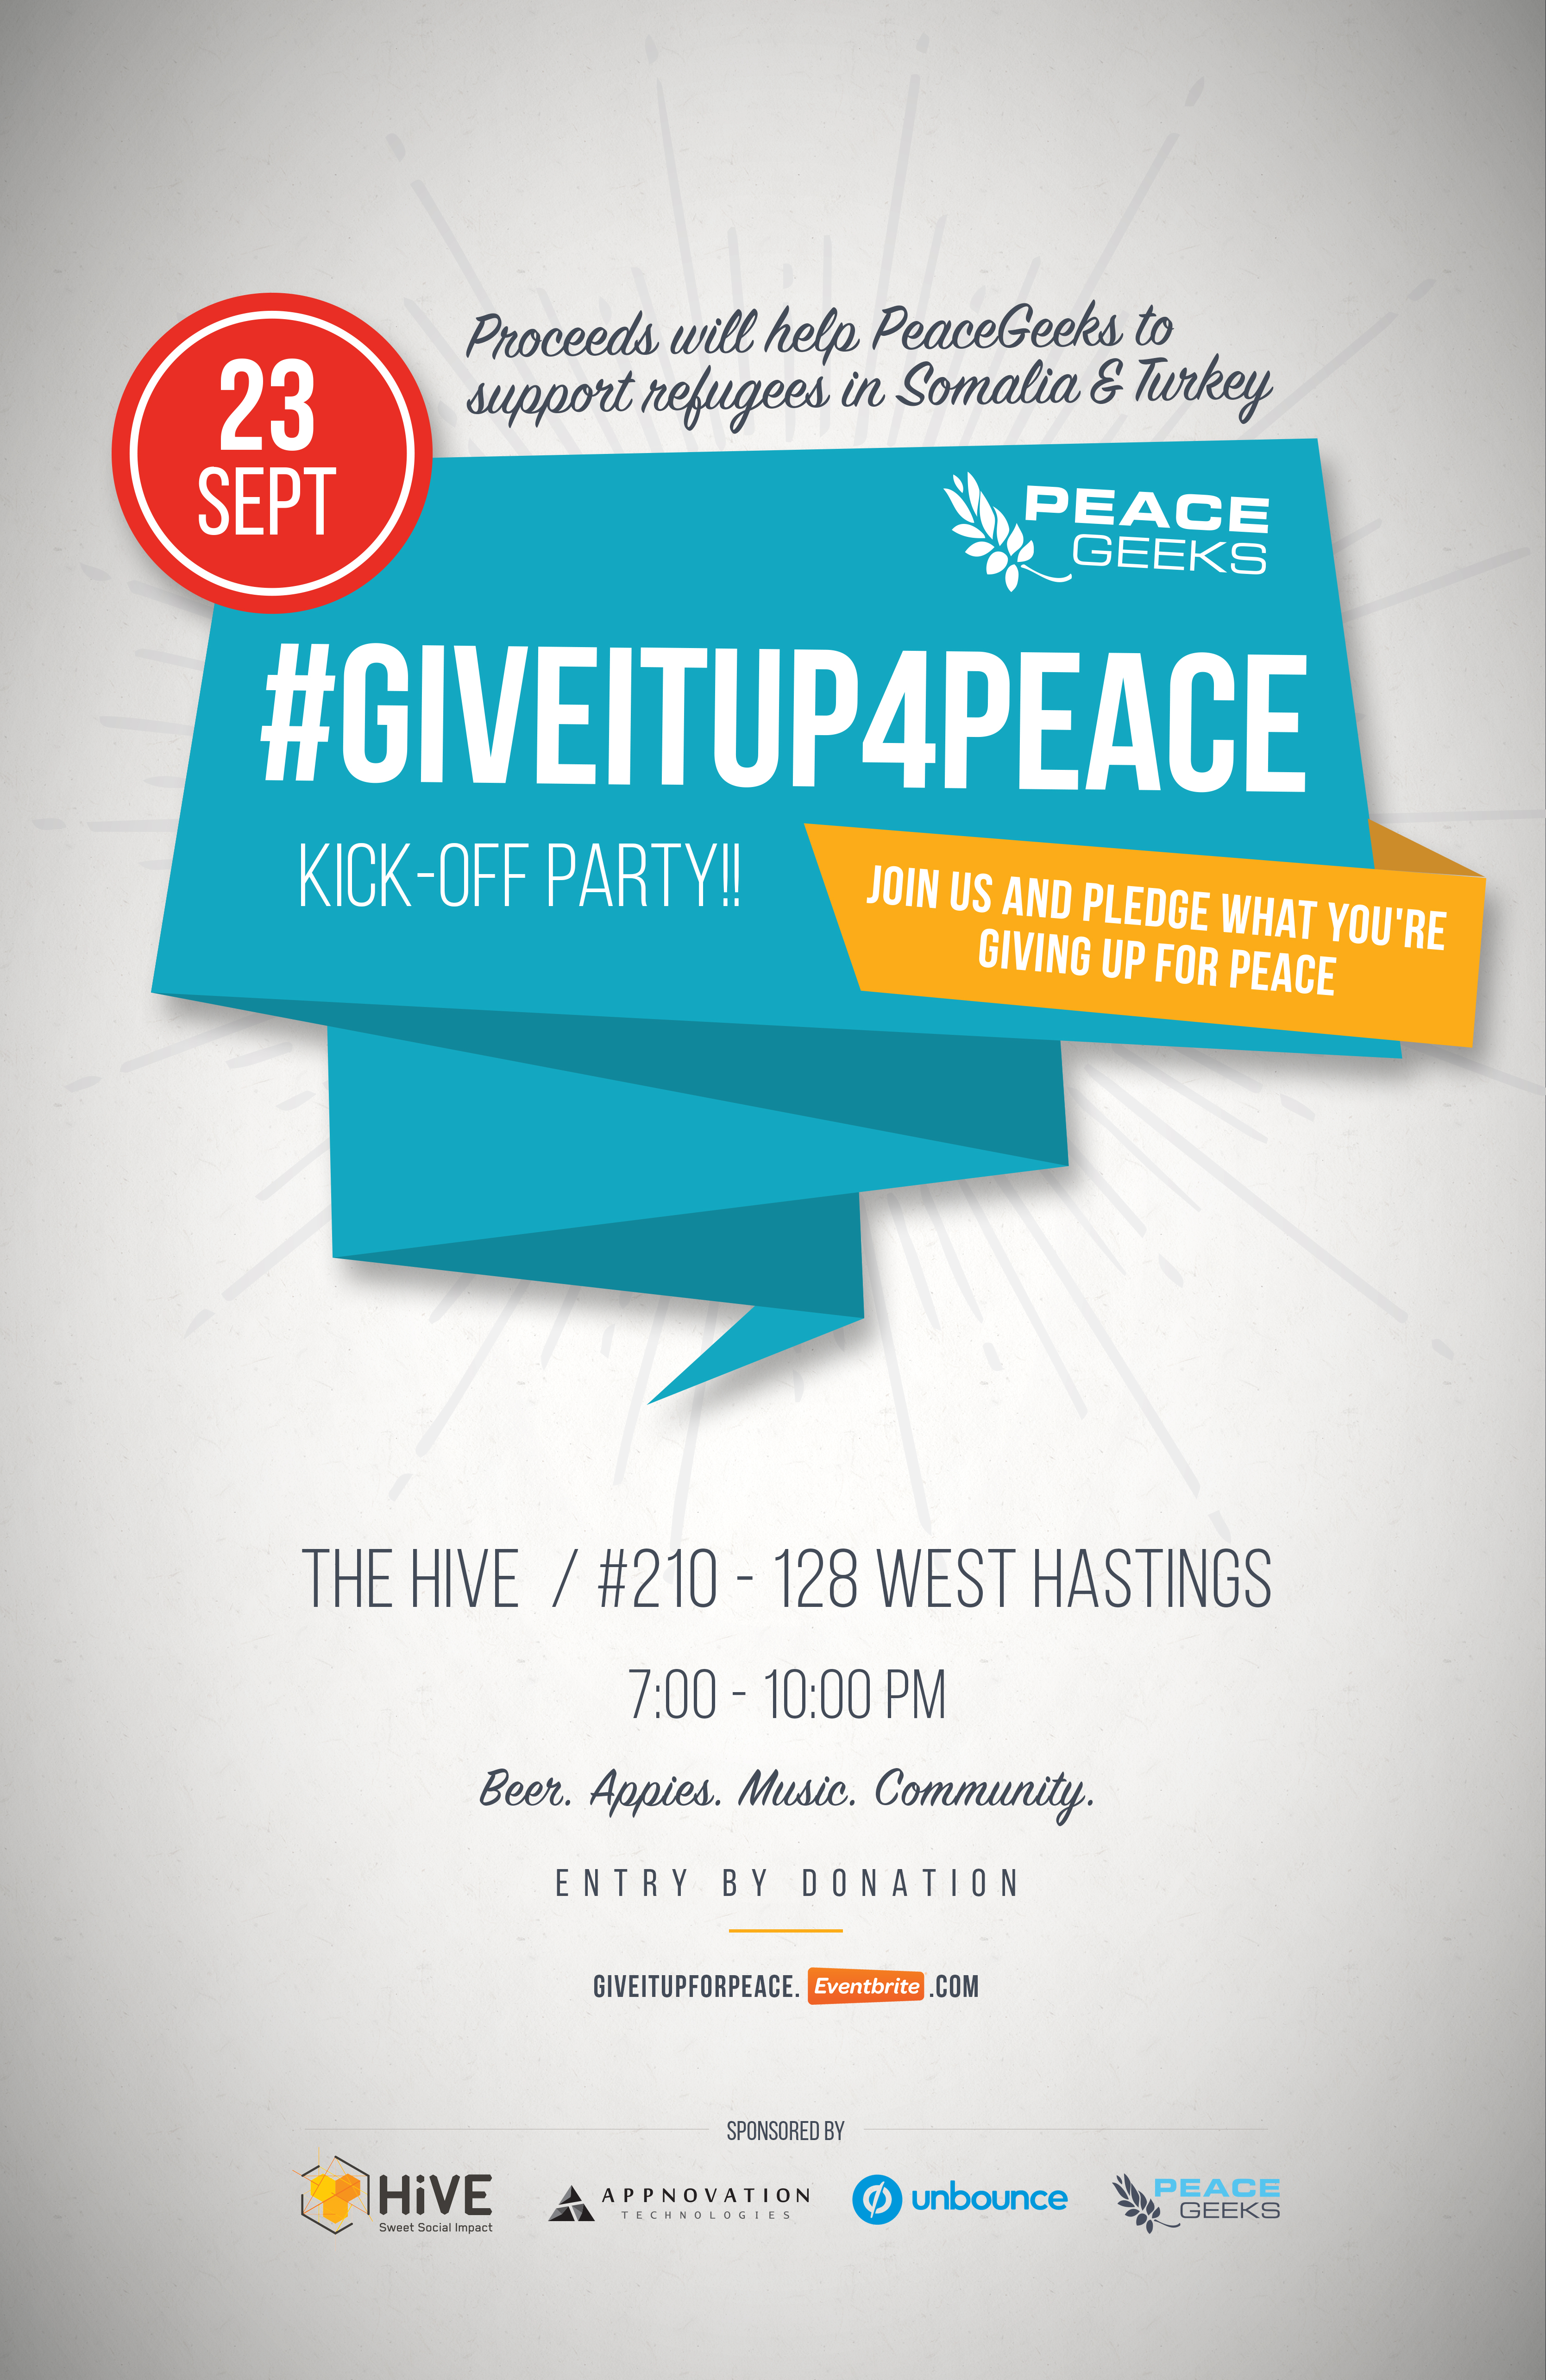 #Giveitup4peace Kick-Off Party